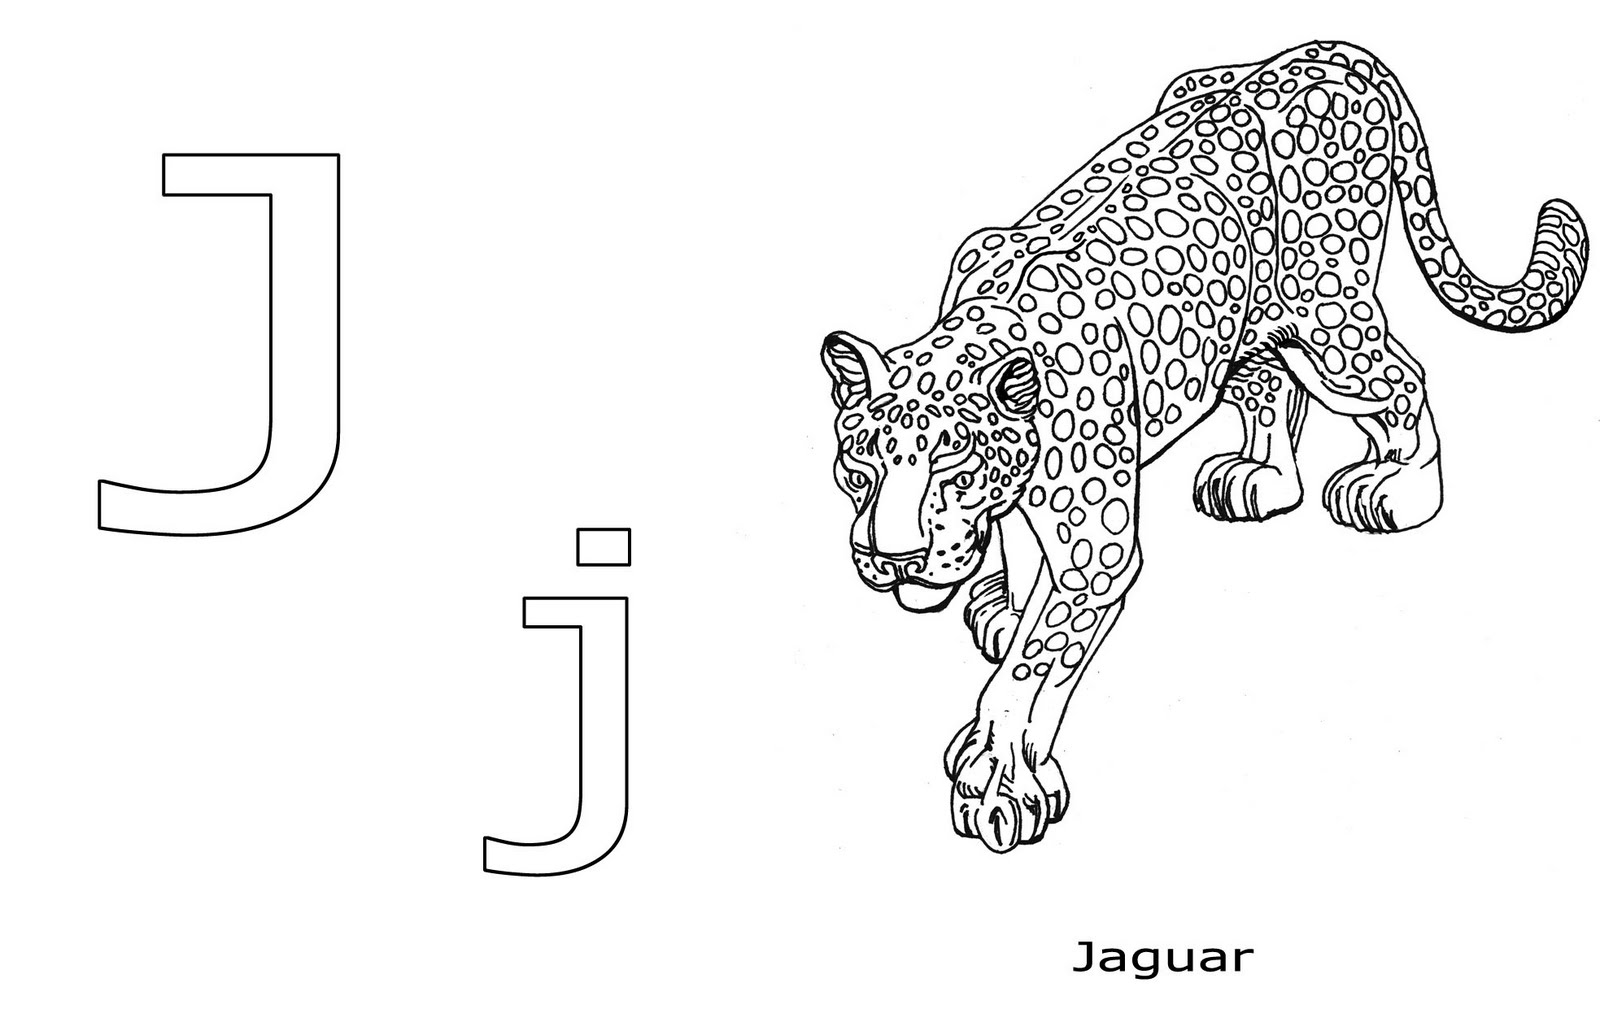 jaguar jumping outline